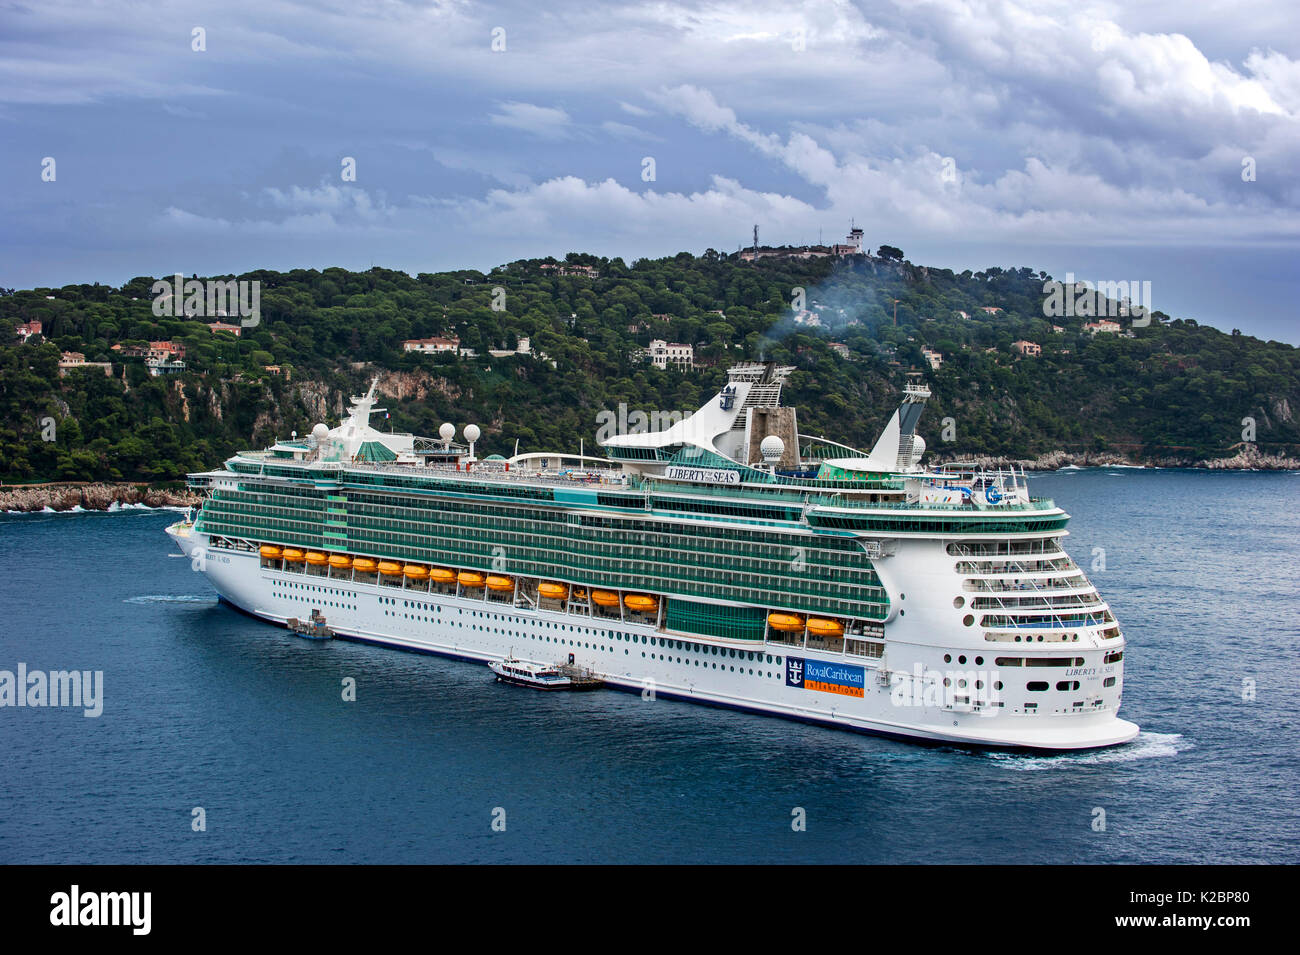 Cruise ship MS Liberty of the Seas of Royal Caribbean International, docked in Nice on French Riviera, France, Europe. October 2014. - Stock Image